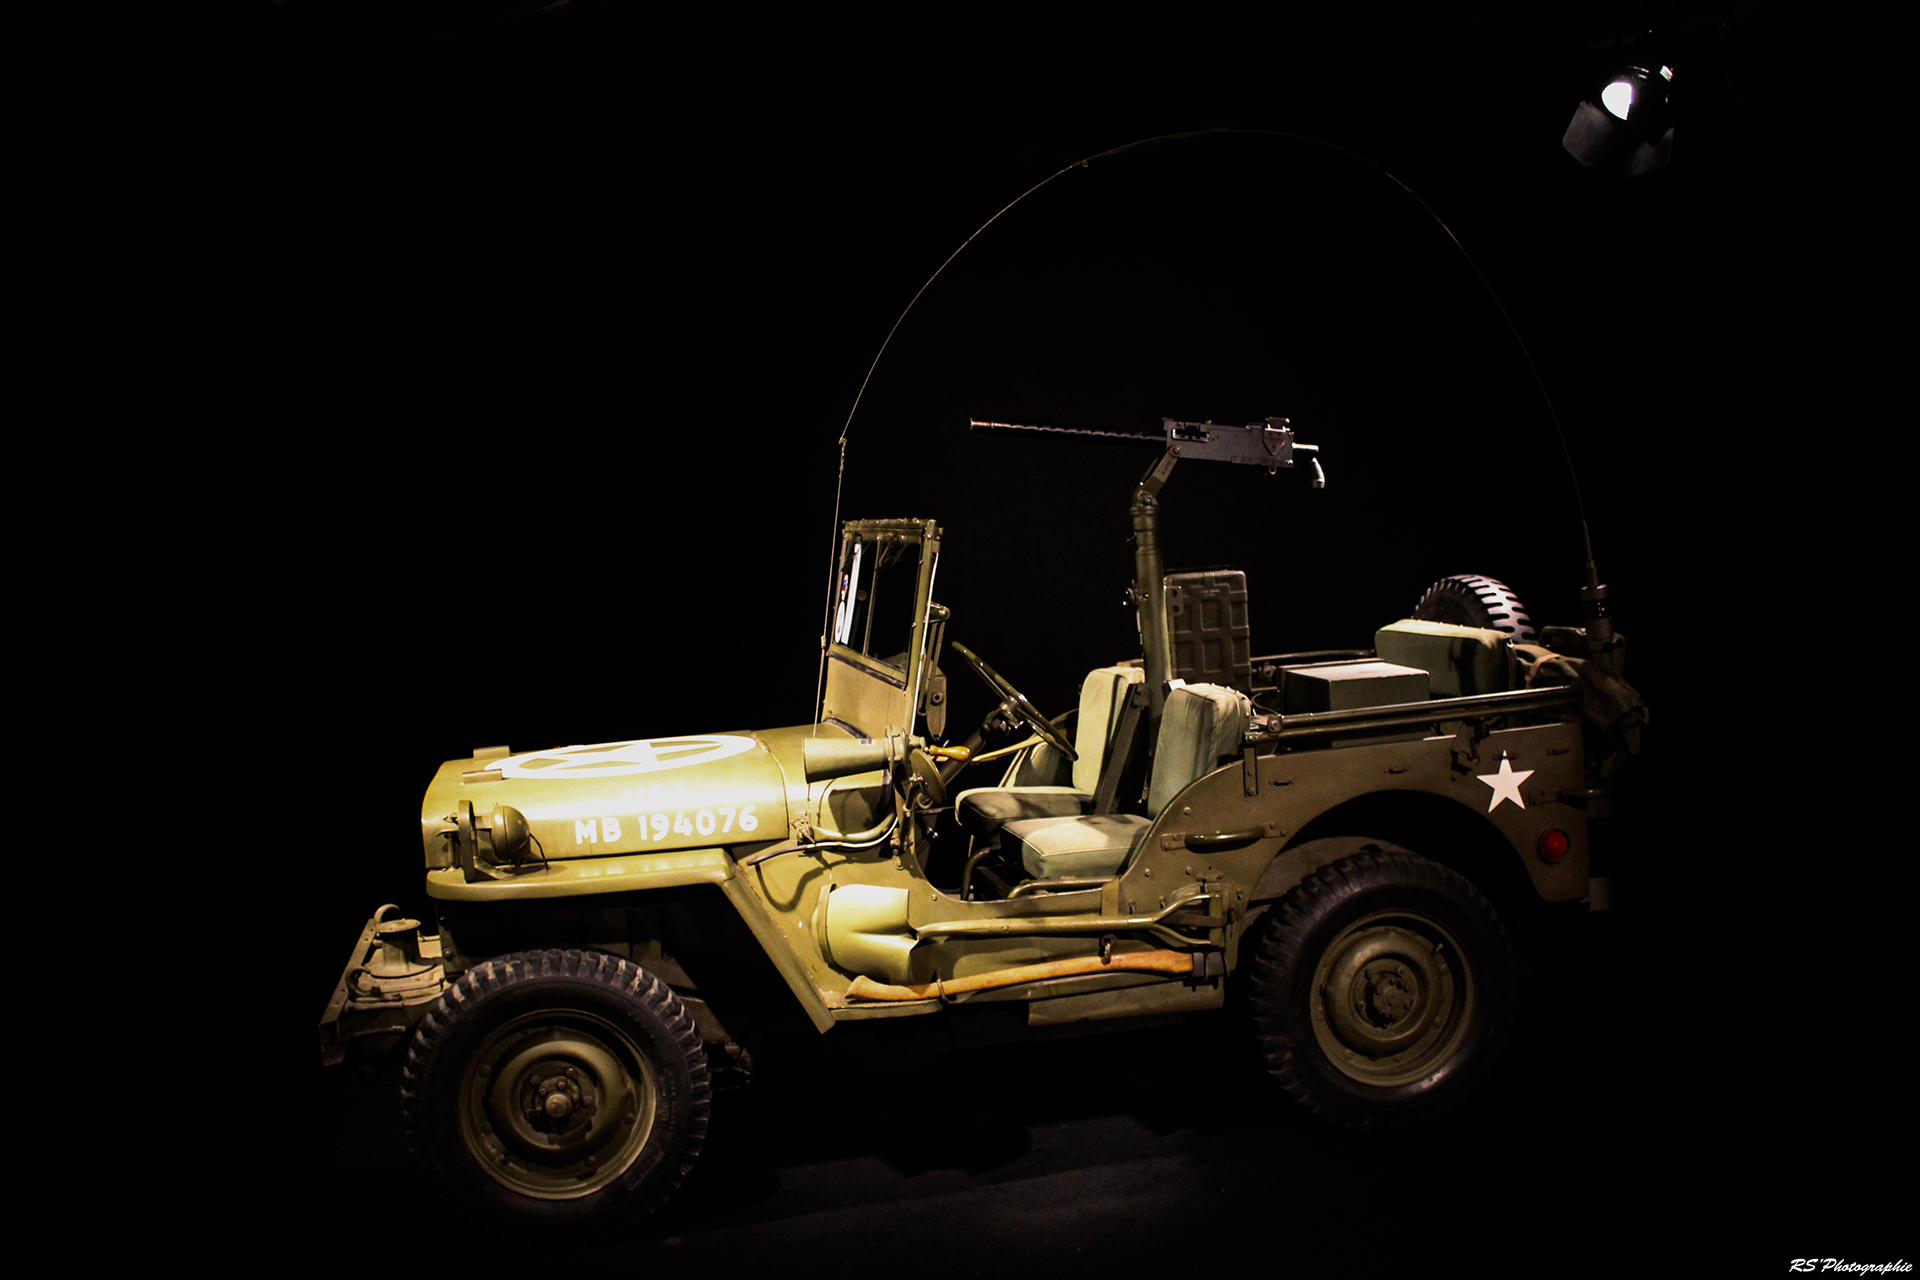 Willys MB Jeep - 1942 - RM - Auctions - 2016 - Arnaud Demasier RS Photographie